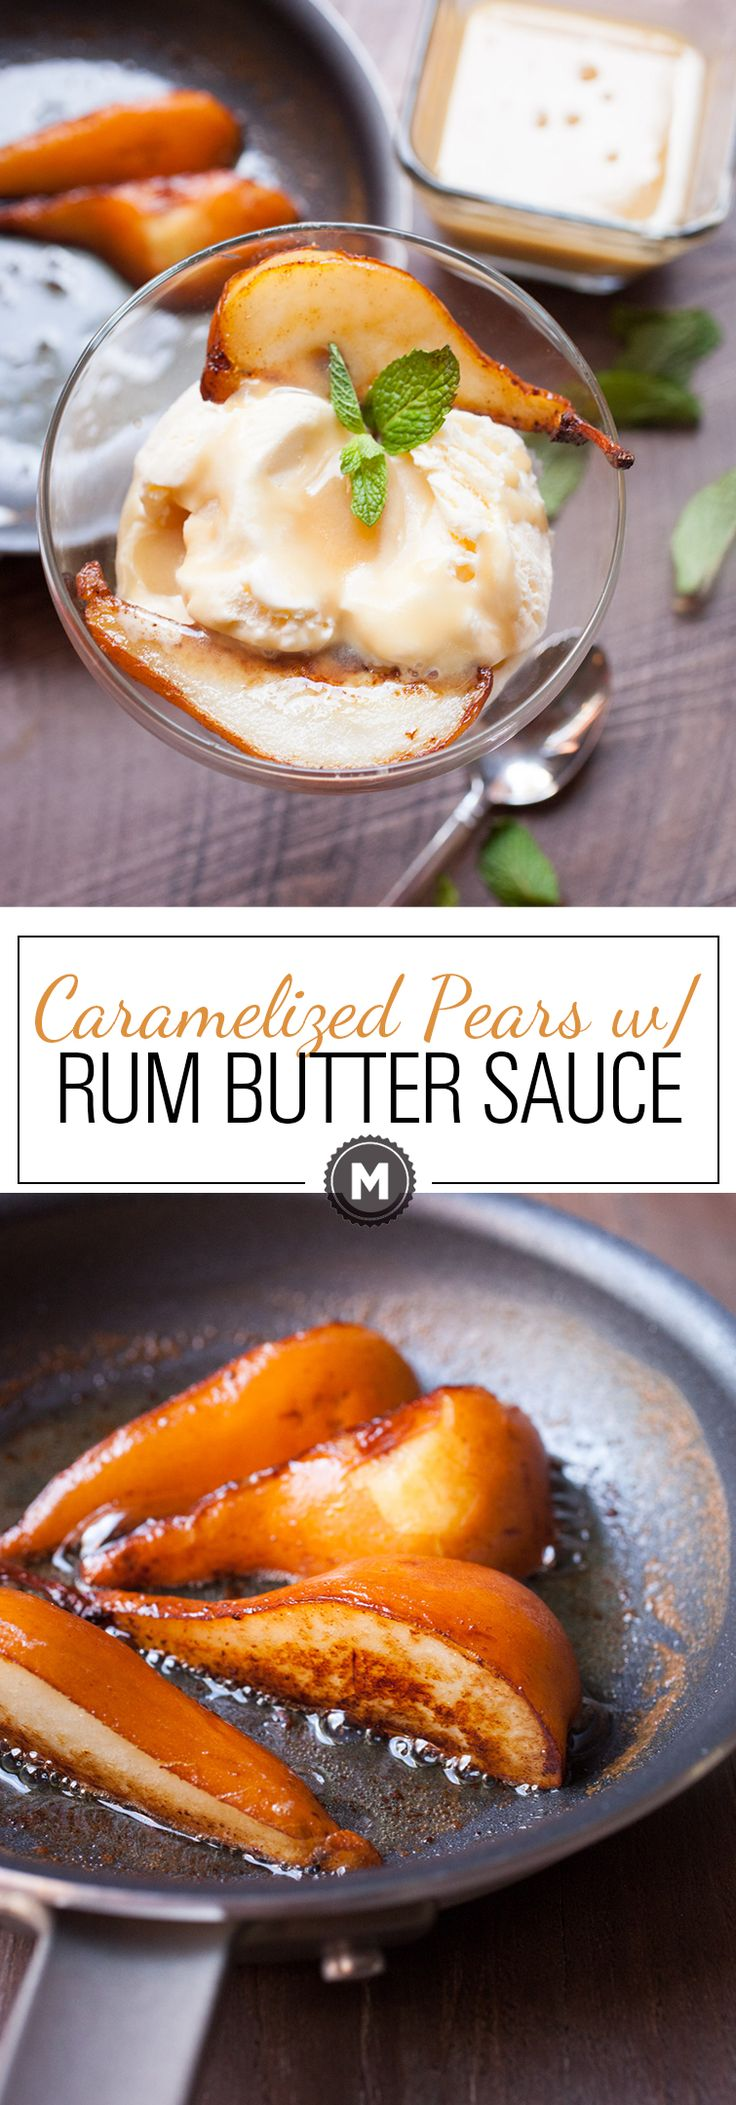 Caramelized Pears with Butter Rum Sauce: A perfect fall/winter dessert and a great excuse to bust out the ice cream even if it's chilly outside! The sauce on this is crazy delicious! | macheesmo.com